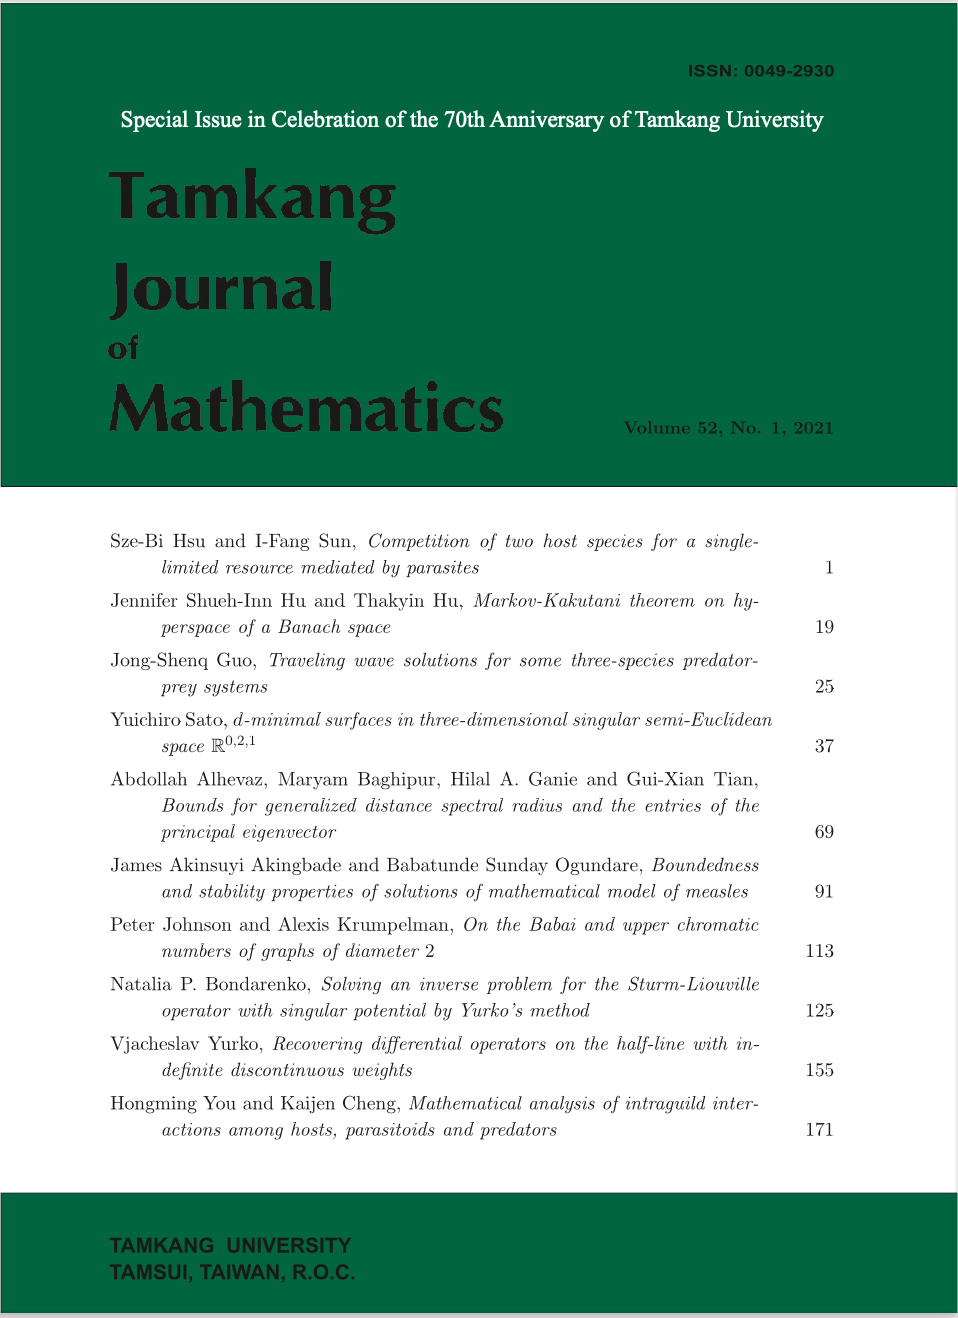 View Vol. 52 No. 1 (2021): Special Issue in Celebration of the 70th Anniversary of Tamkang University